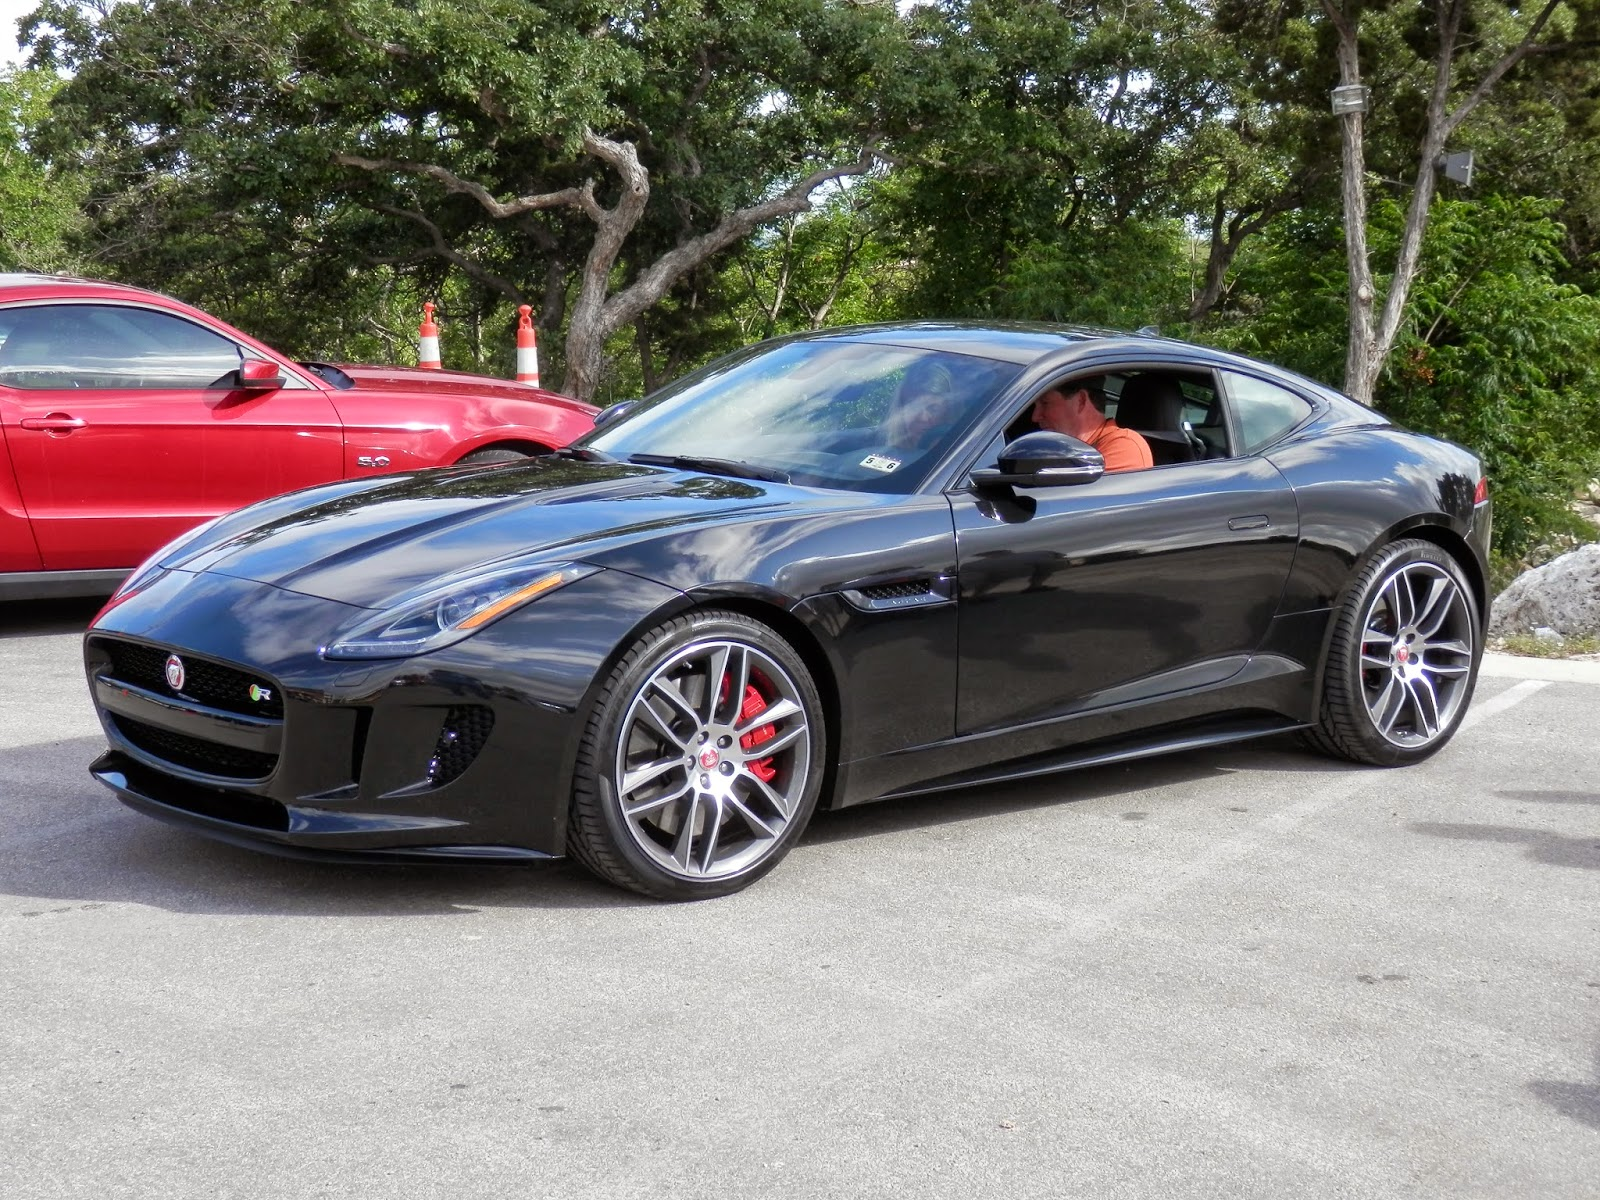 Jaguar F Type Coupe Black The f-type coupe is startingJaguar F Type Black Coupe